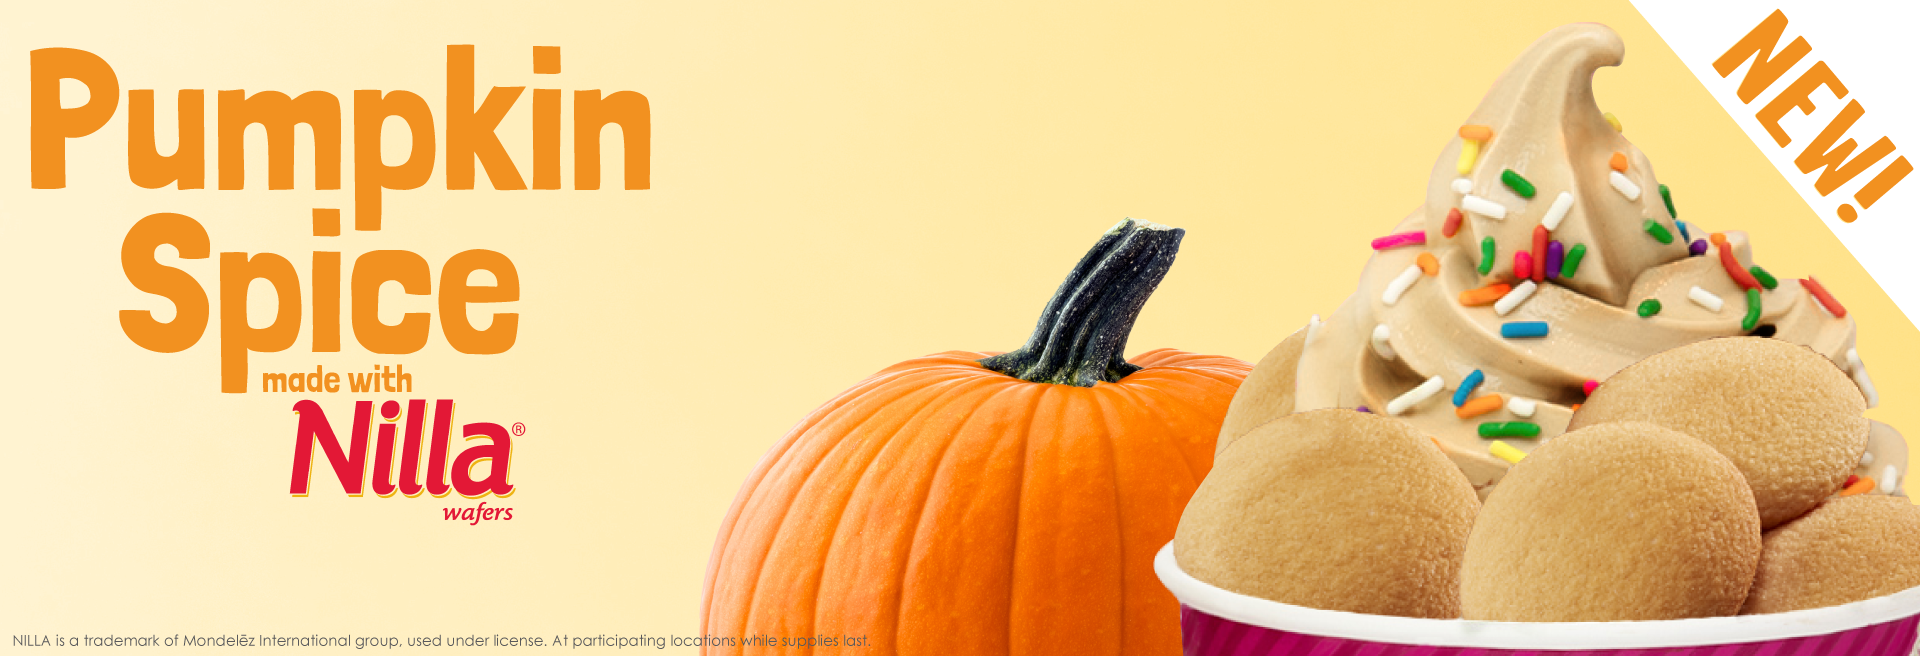 It's fall so you know what that means...it's time for Pumpkin froyo! This delicious flavor is made with real Nilla Wafers, cinnamon, and has no artificial colors.